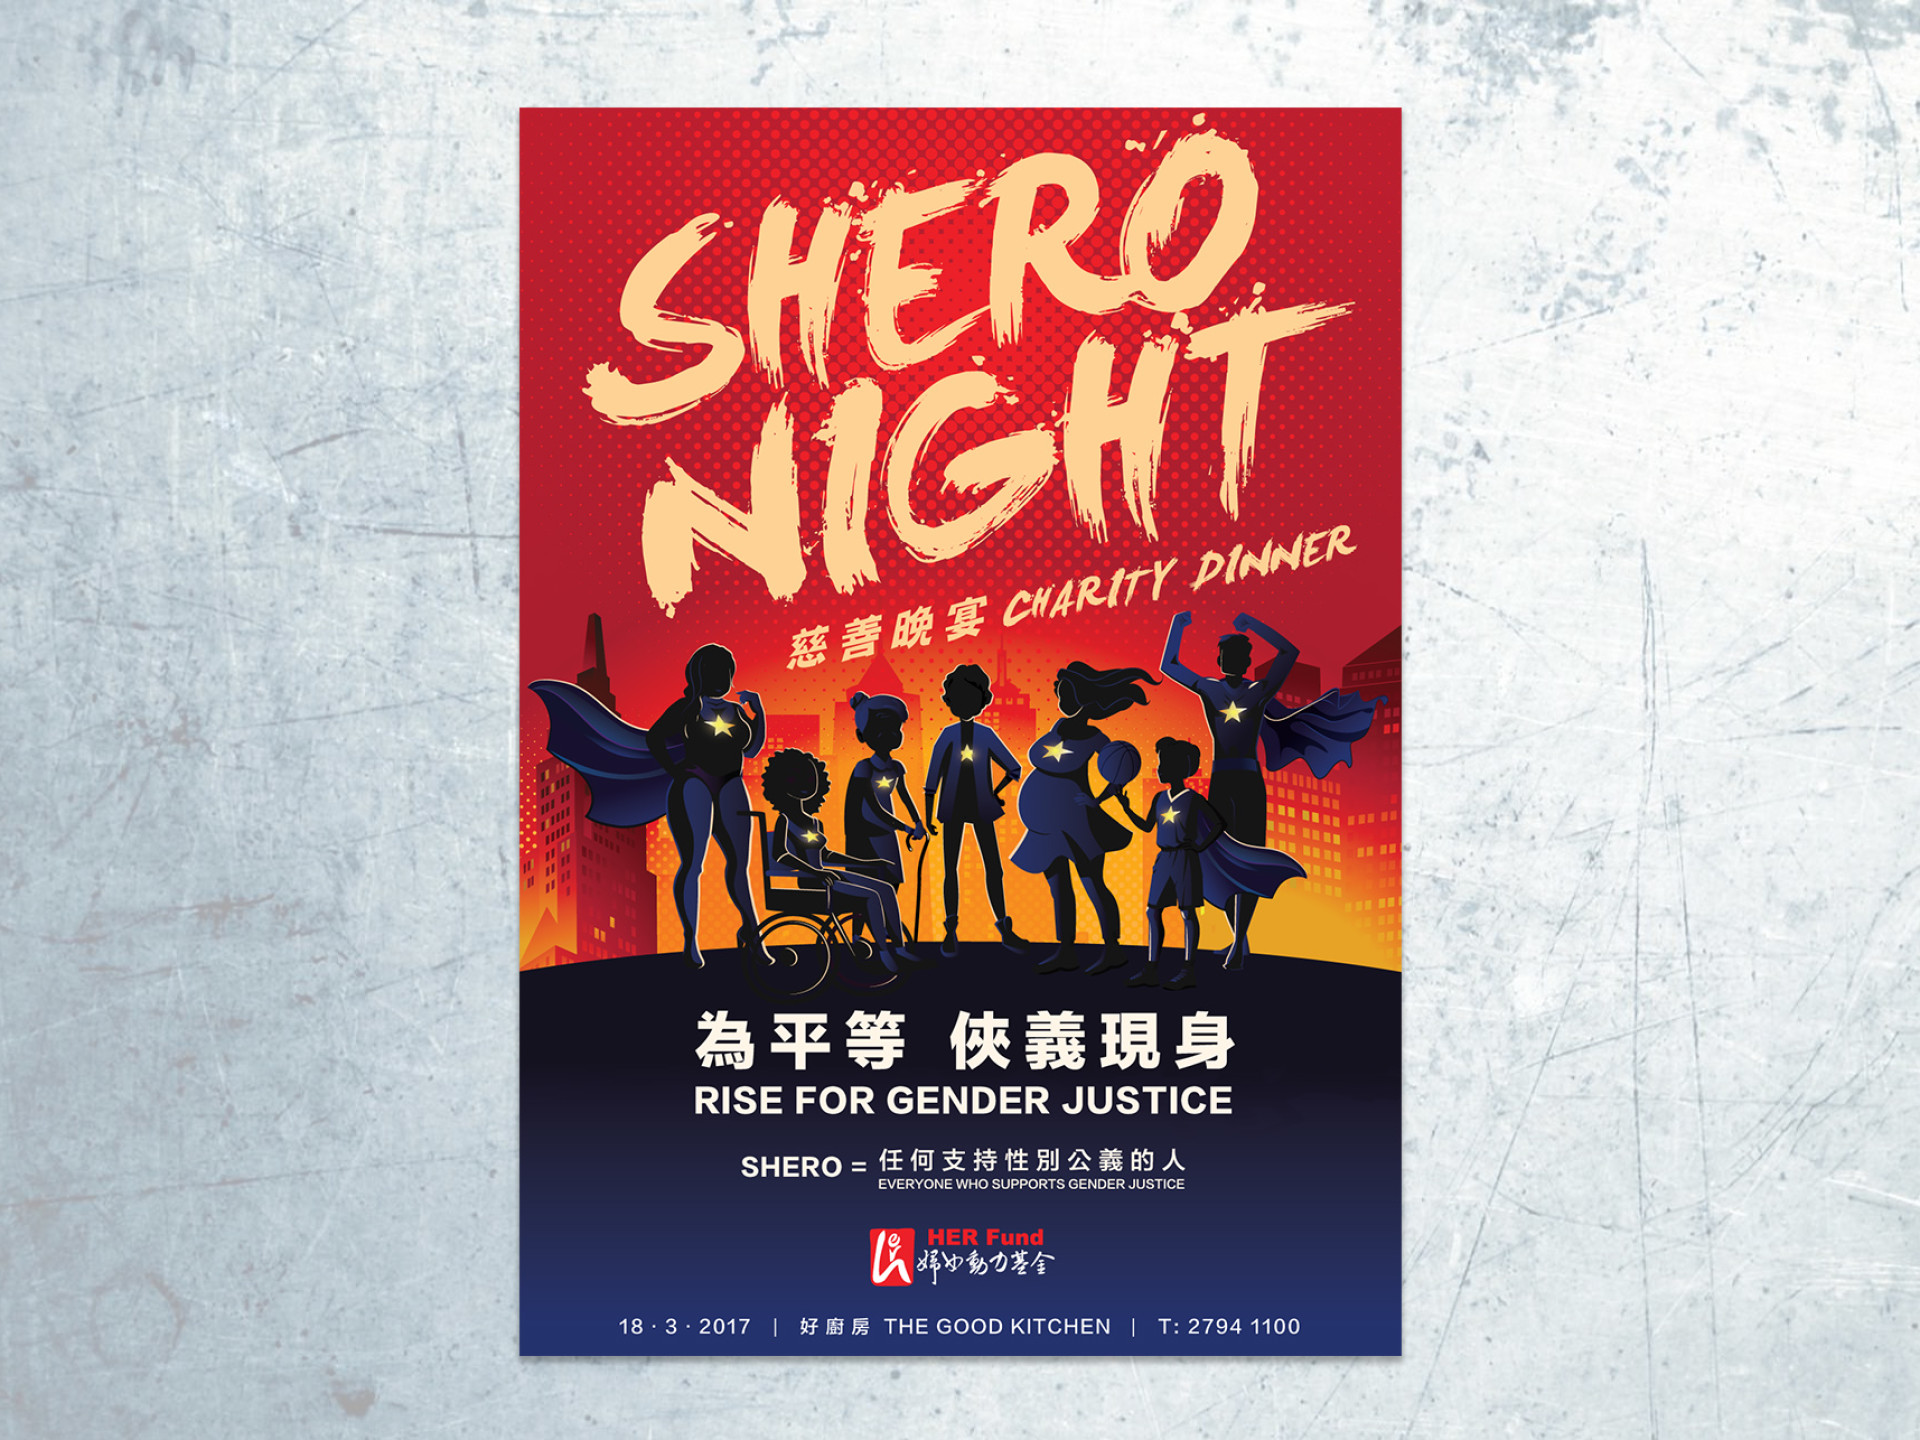 Poster design key - Her Fund Shero Night Poster Design